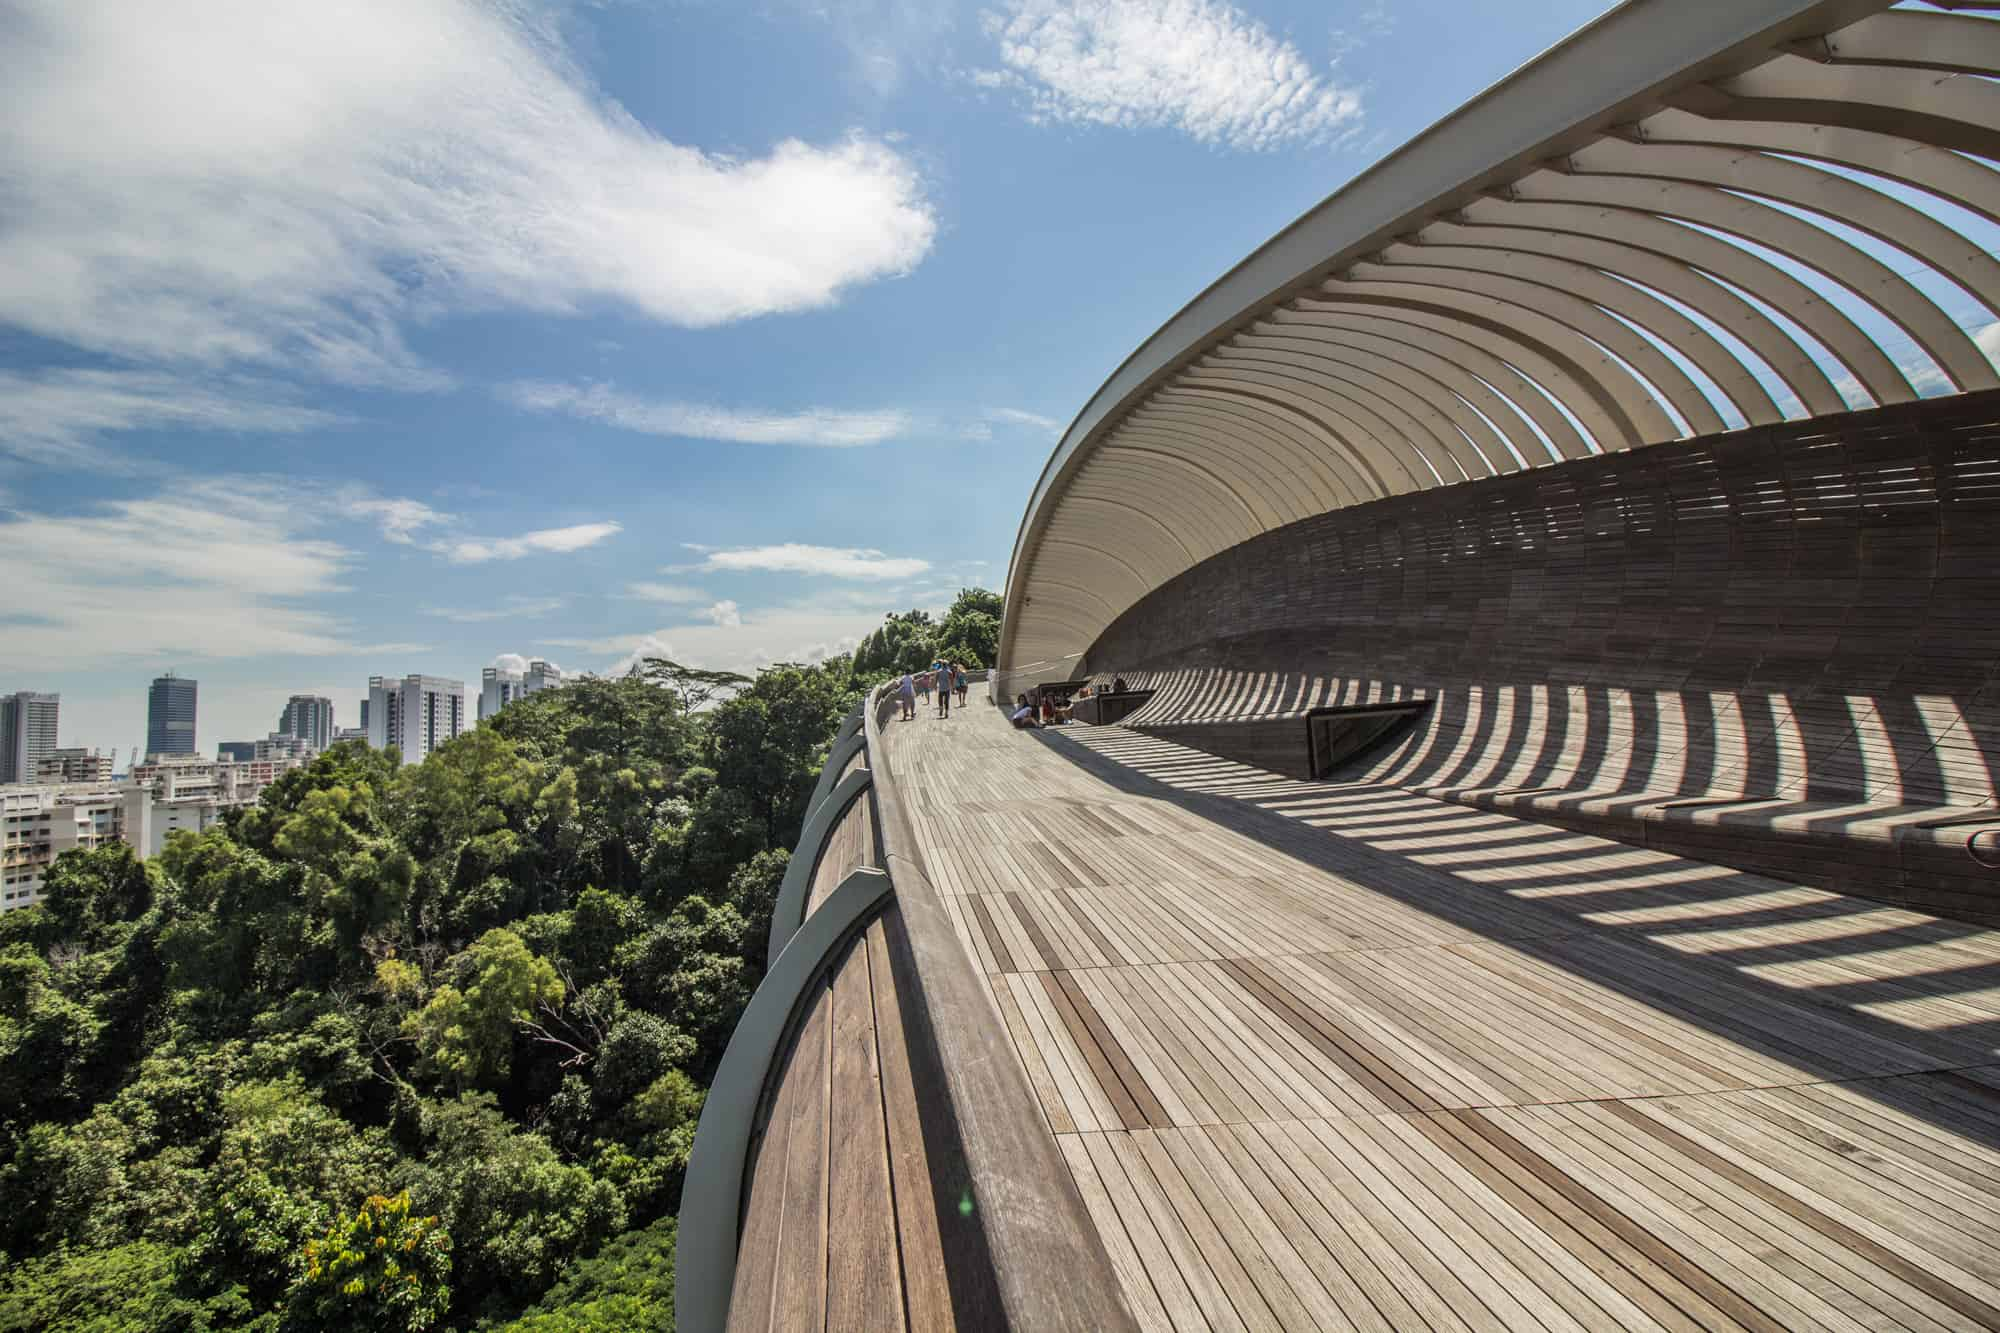 Photo Spots in Singapore: Henderson Waves